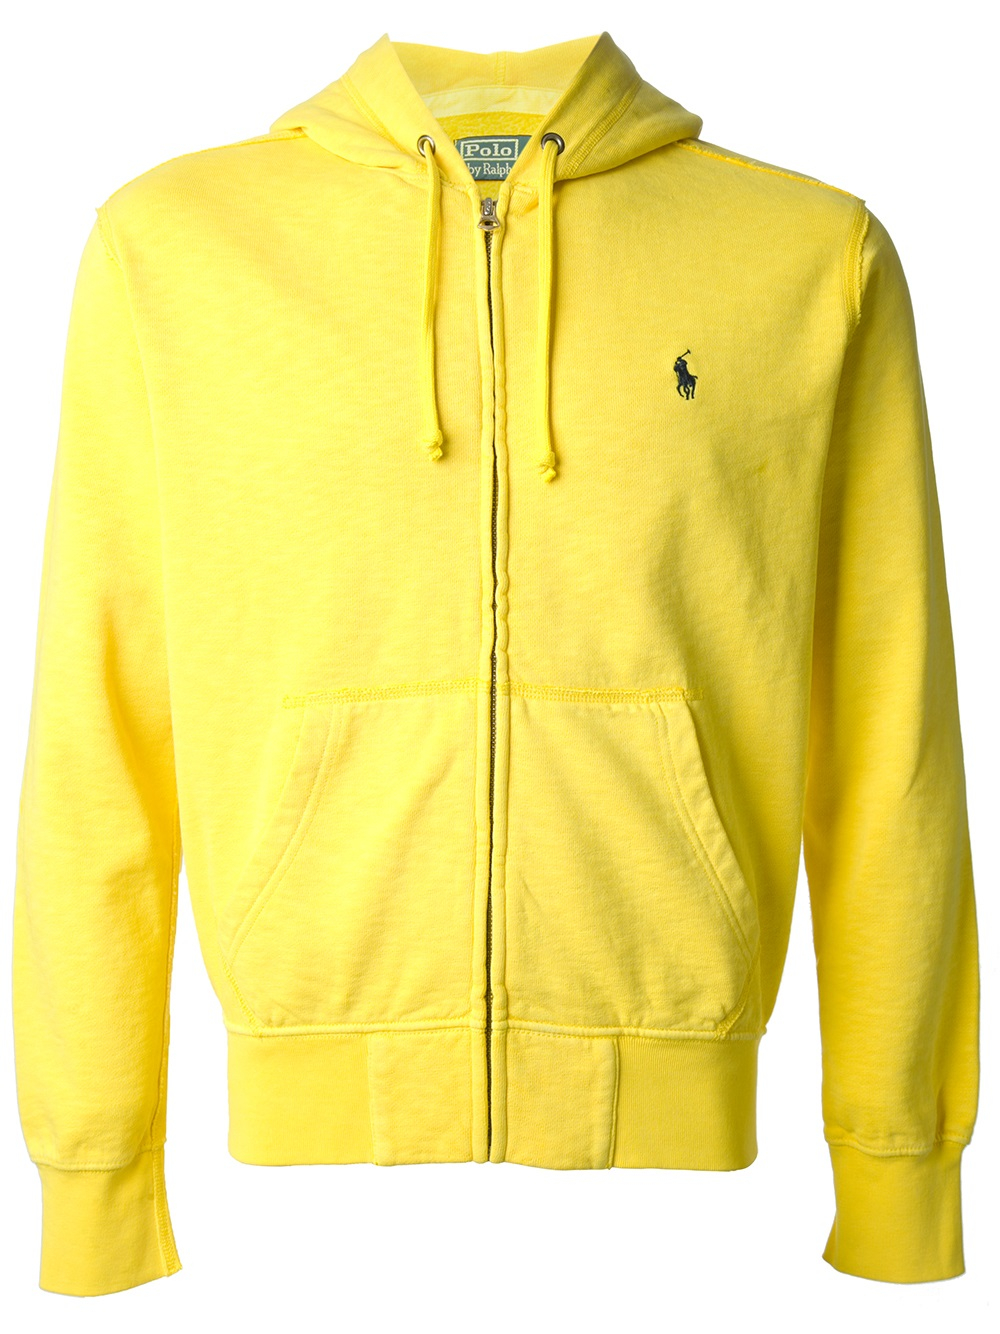 polo ralph lauren zip front hoodie in yellow for men lyst. Black Bedroom Furniture Sets. Home Design Ideas